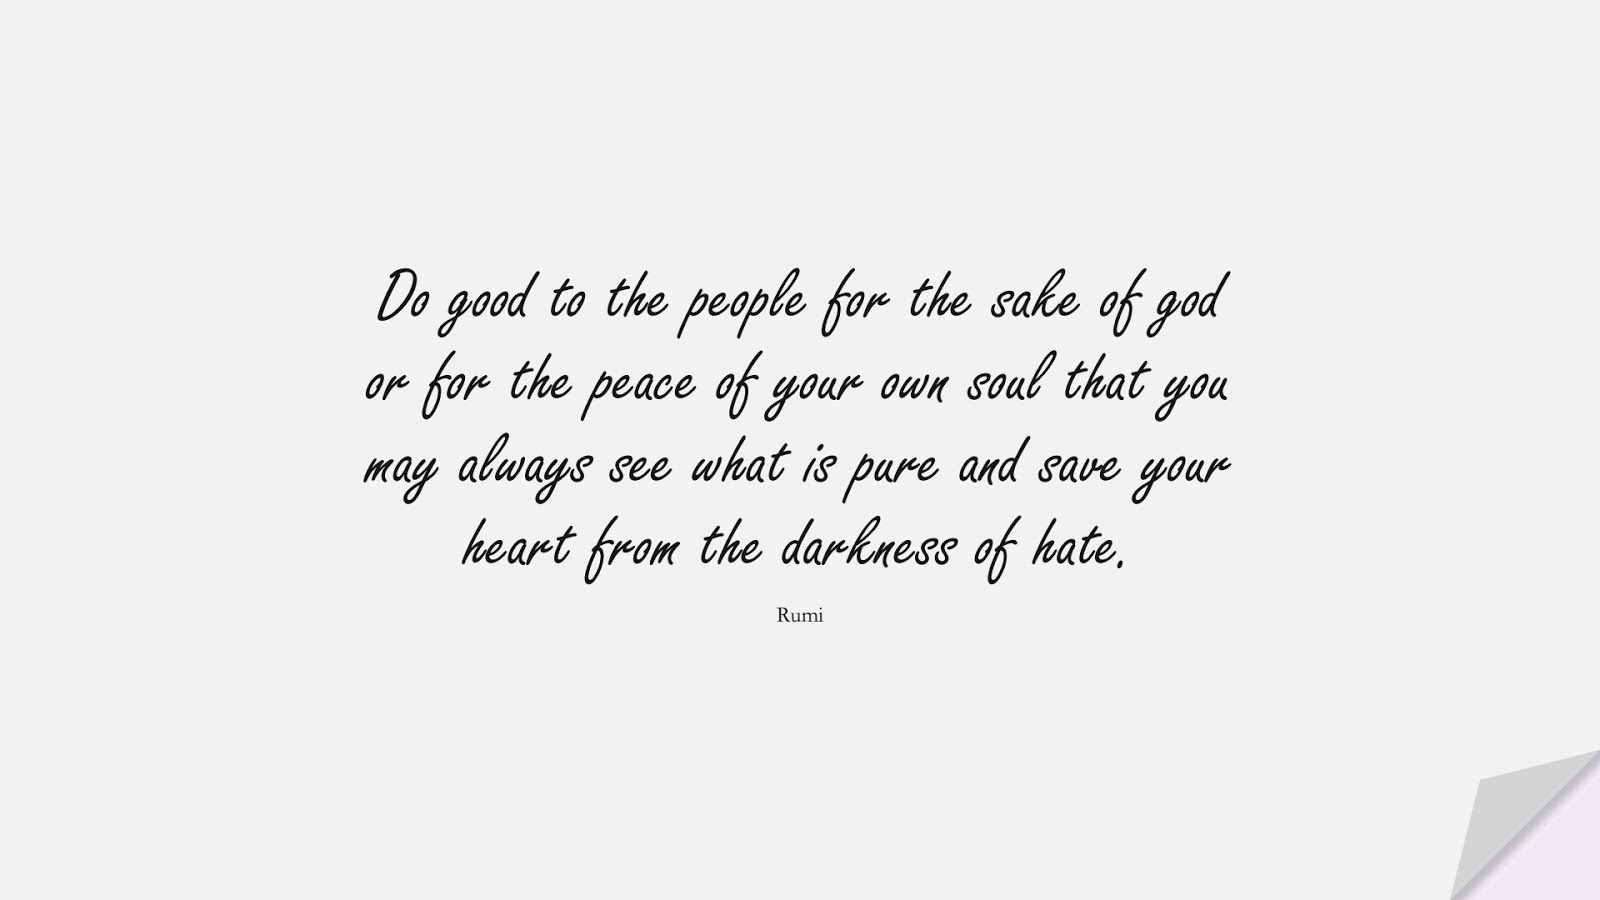 Do good to the people for the sake of god or for the peace of your own soul that you may always see what is pure and save your heart from the darkness of hate. (Rumi);  #RumiQuotes